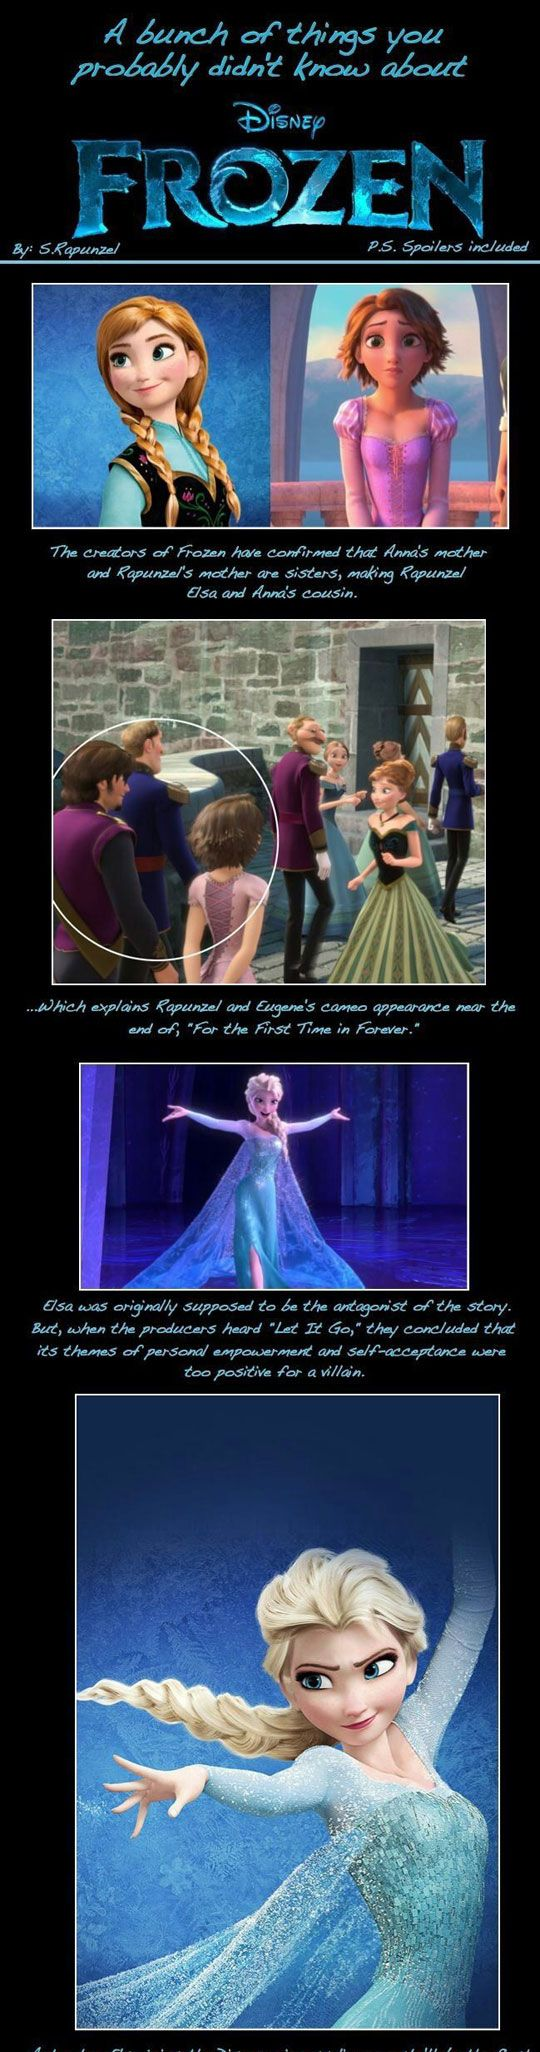 A Bunch Of Things About Frozen You Probably Didn't Know